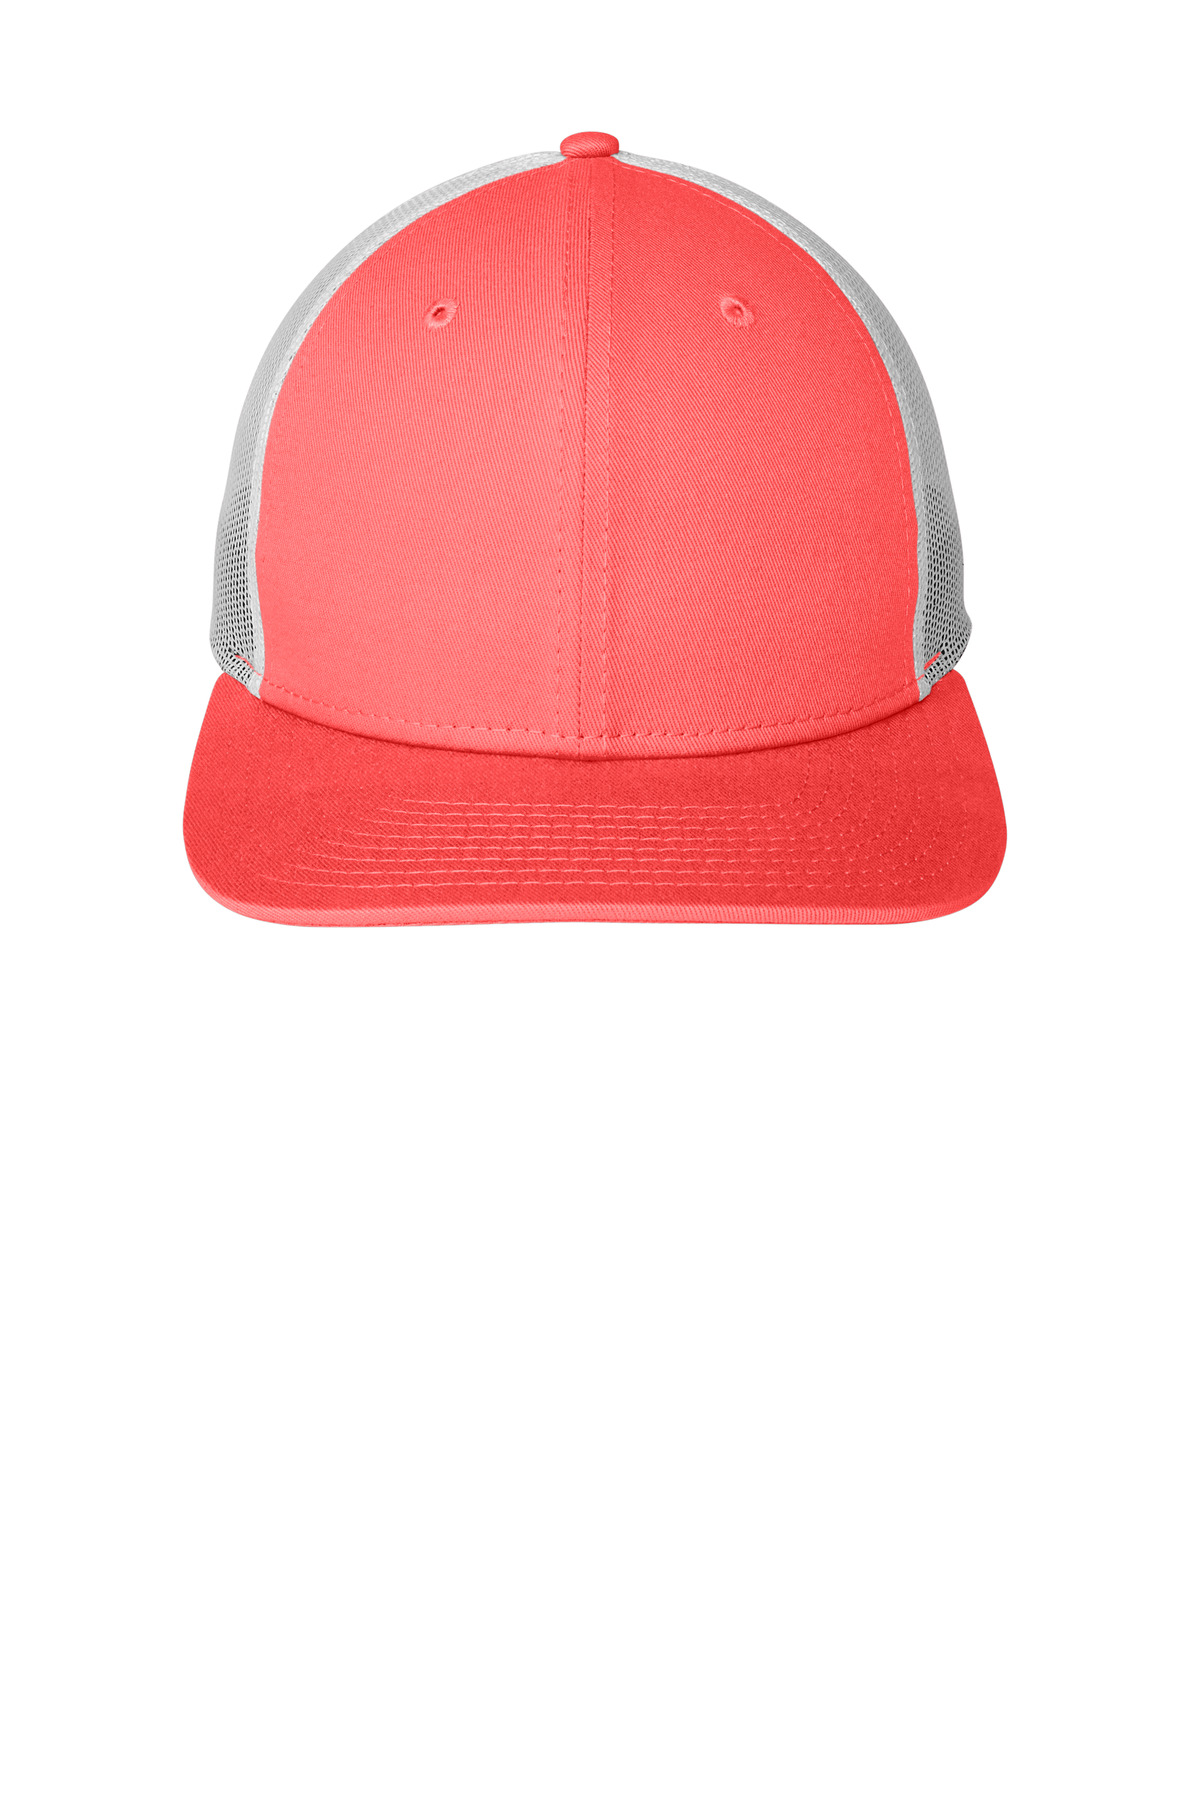 New Era  ®   Snapback Low Profile Trucker Cap   NE207 - Coral/ White